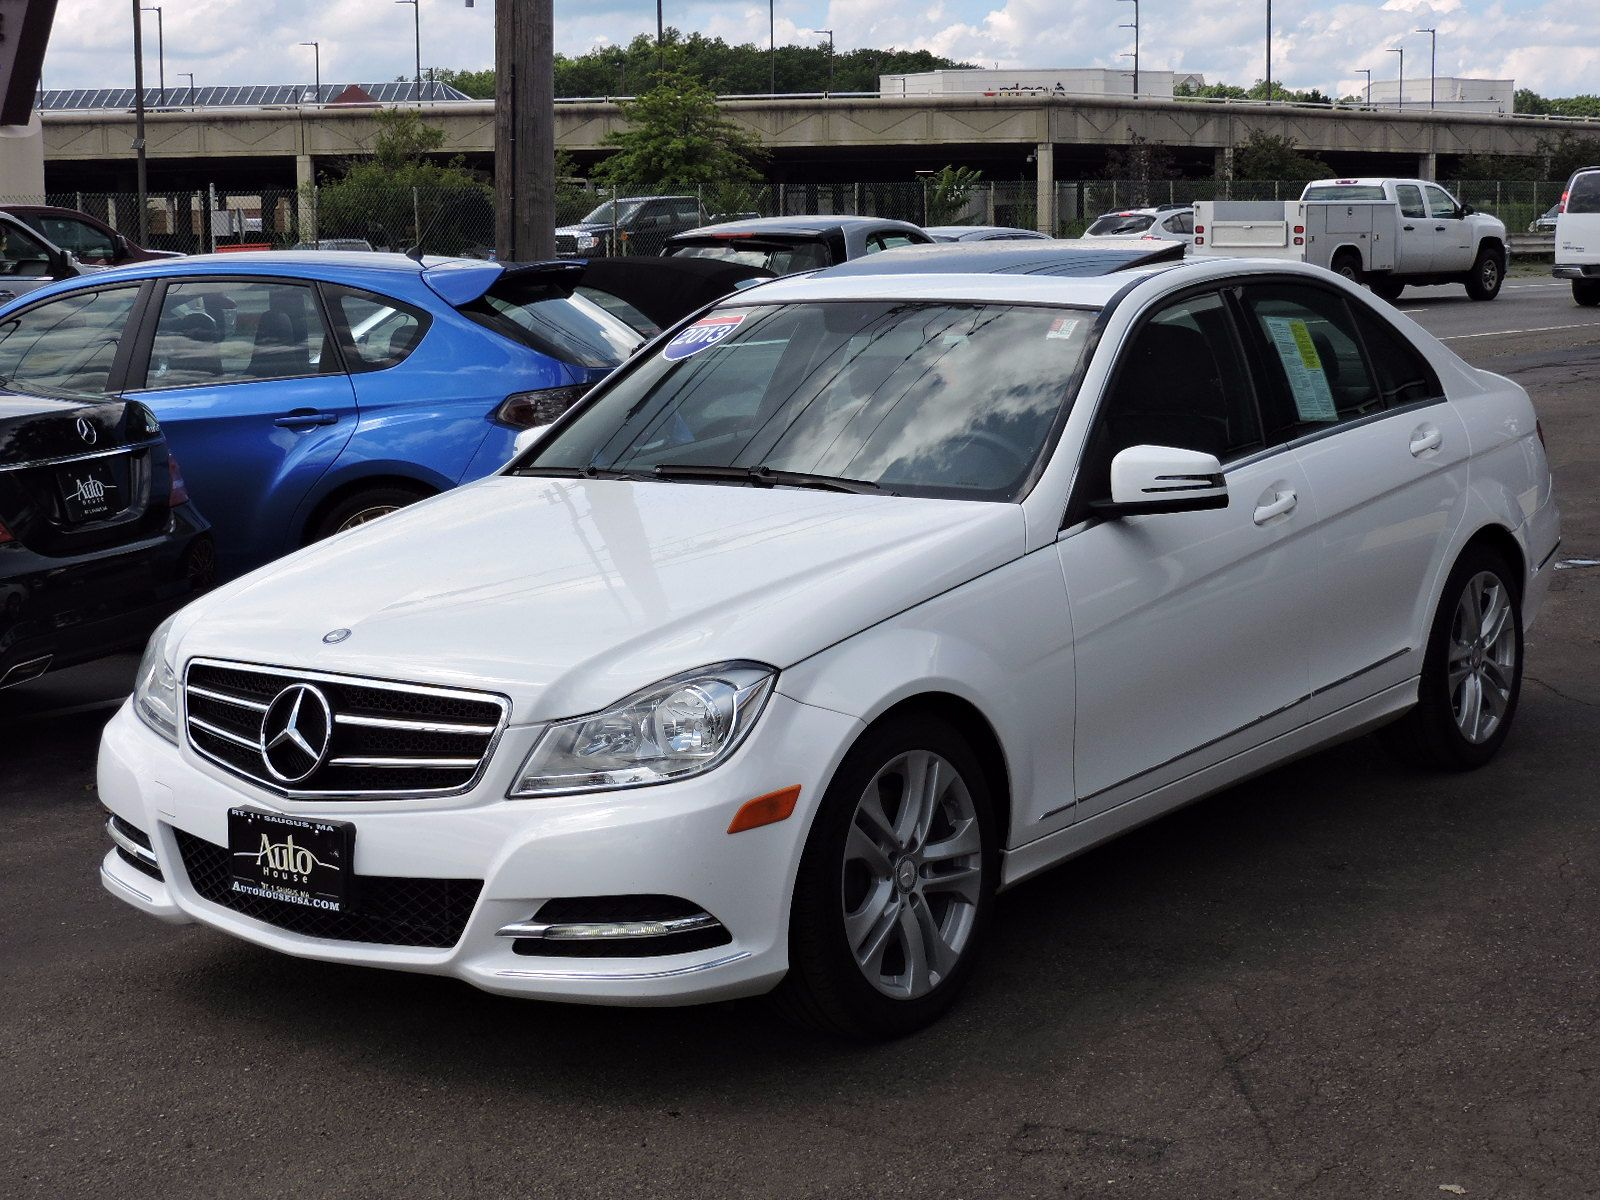 Used 2013 mercedes benz c300 c 300 luxury at saugus auto mall for Mercedes benz auto loan rates